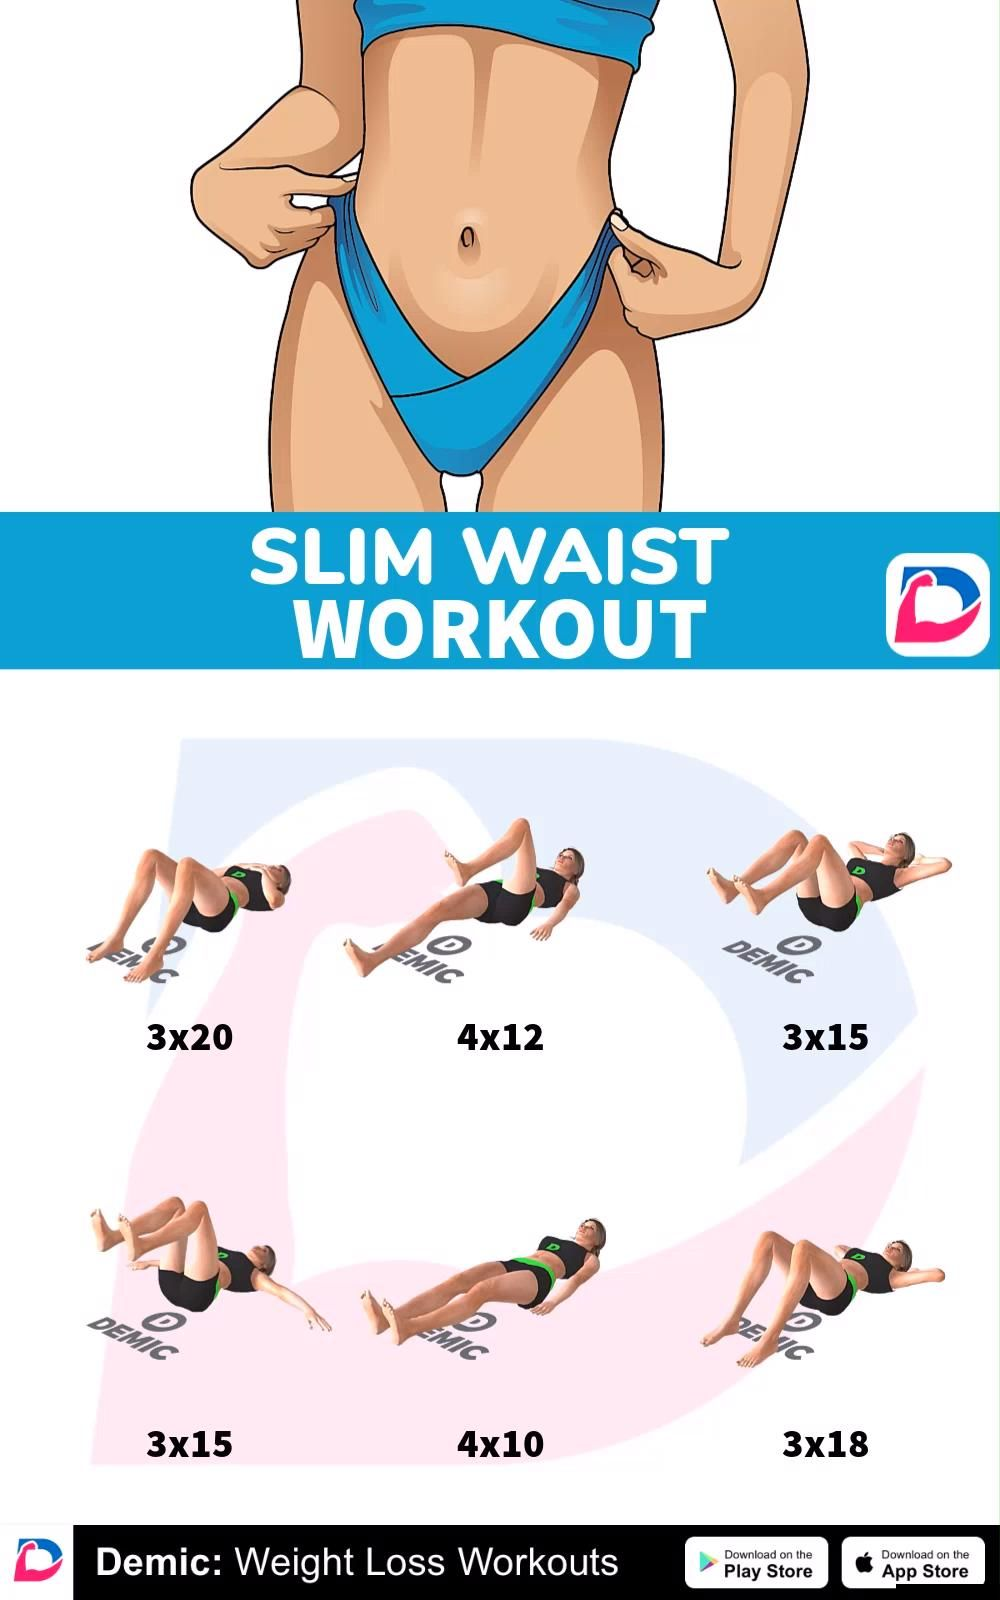 #bellyfat #fatburn #burnfat #weightlose #fitness #workout #demicapp